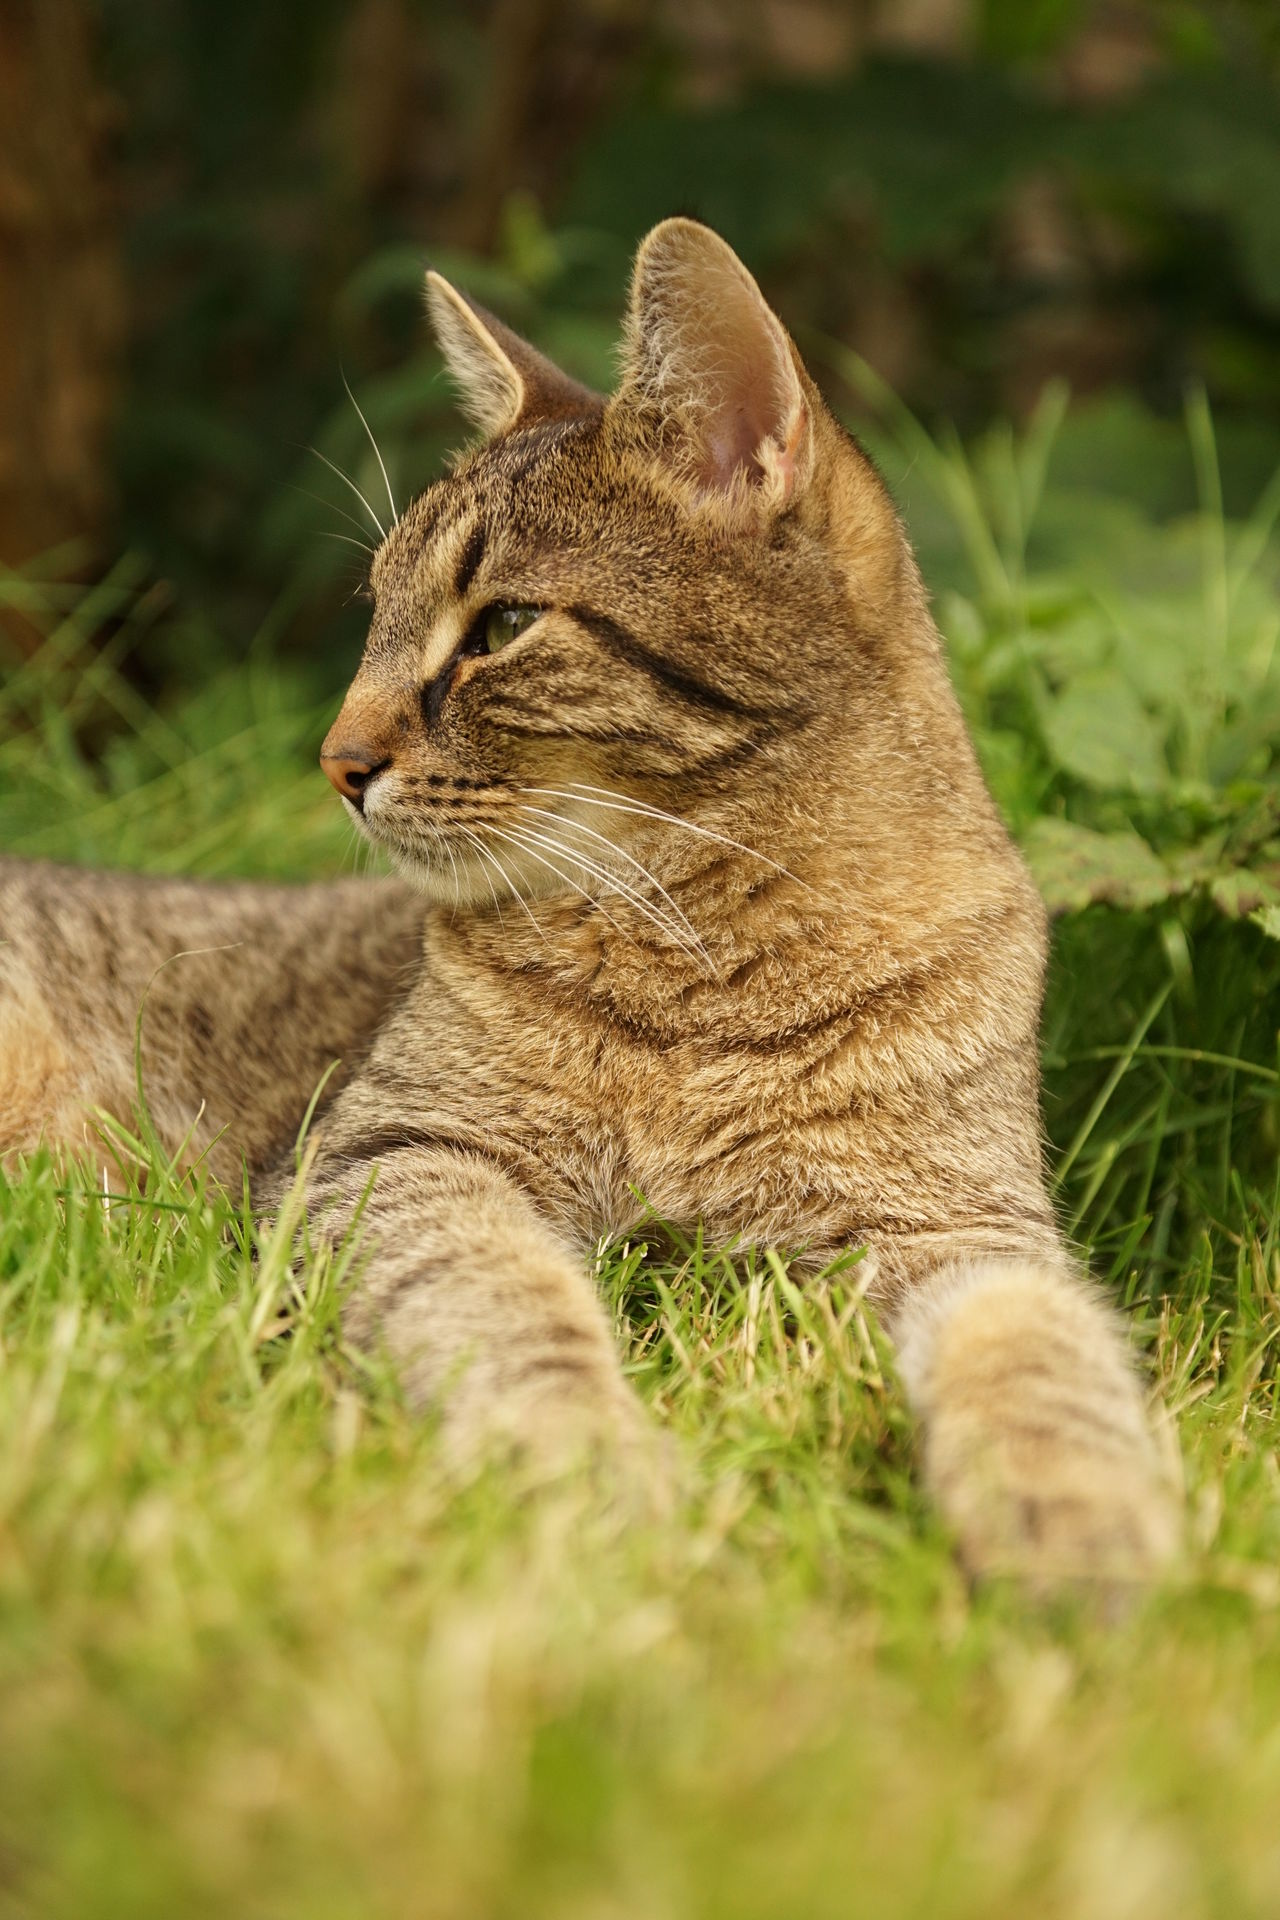 Tabby cat relaxing on the lawn Grass Listening Animal Portrait Animal Themes Close-up Day Domestic Animals Domestic Cat European Shorthair Feline Garden Grass Lawn Lying Down Mammal Nature No People One Animal Outdoors Pets Relaxation Relaxed Sitting Tabby Cat Watching